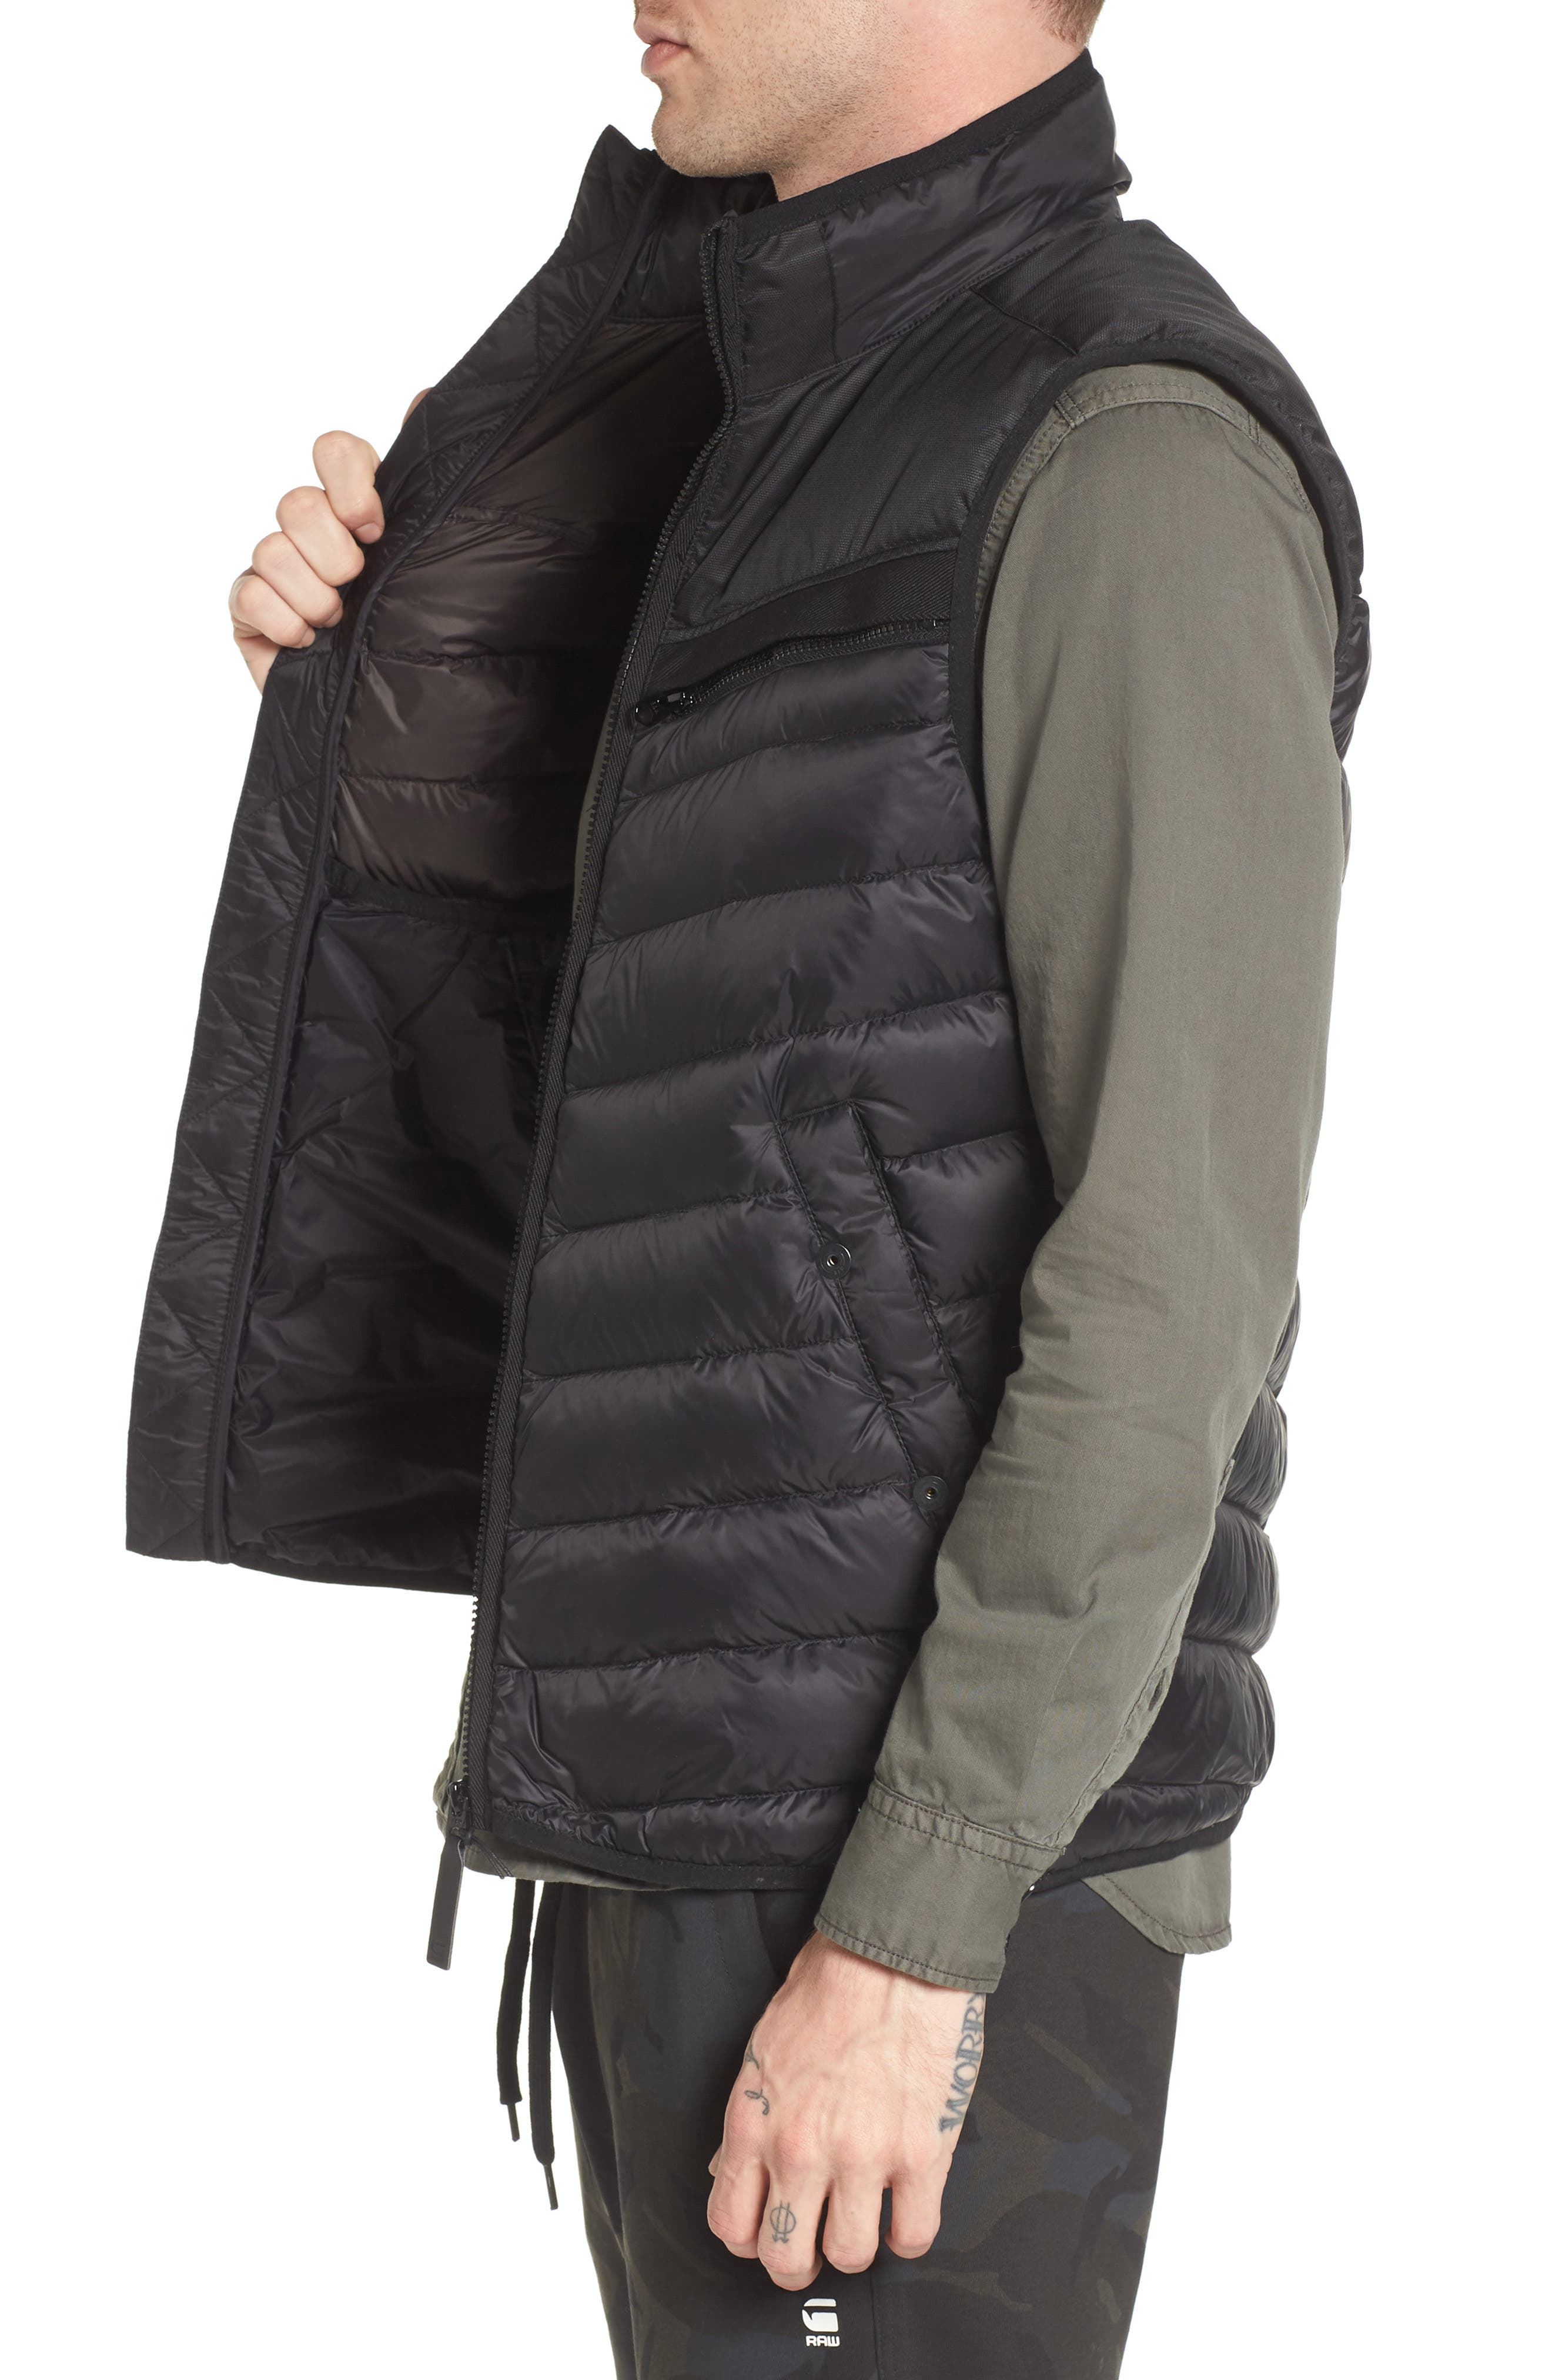 Attacc Down Vest,                             Alternate thumbnail 3, color,                             Black